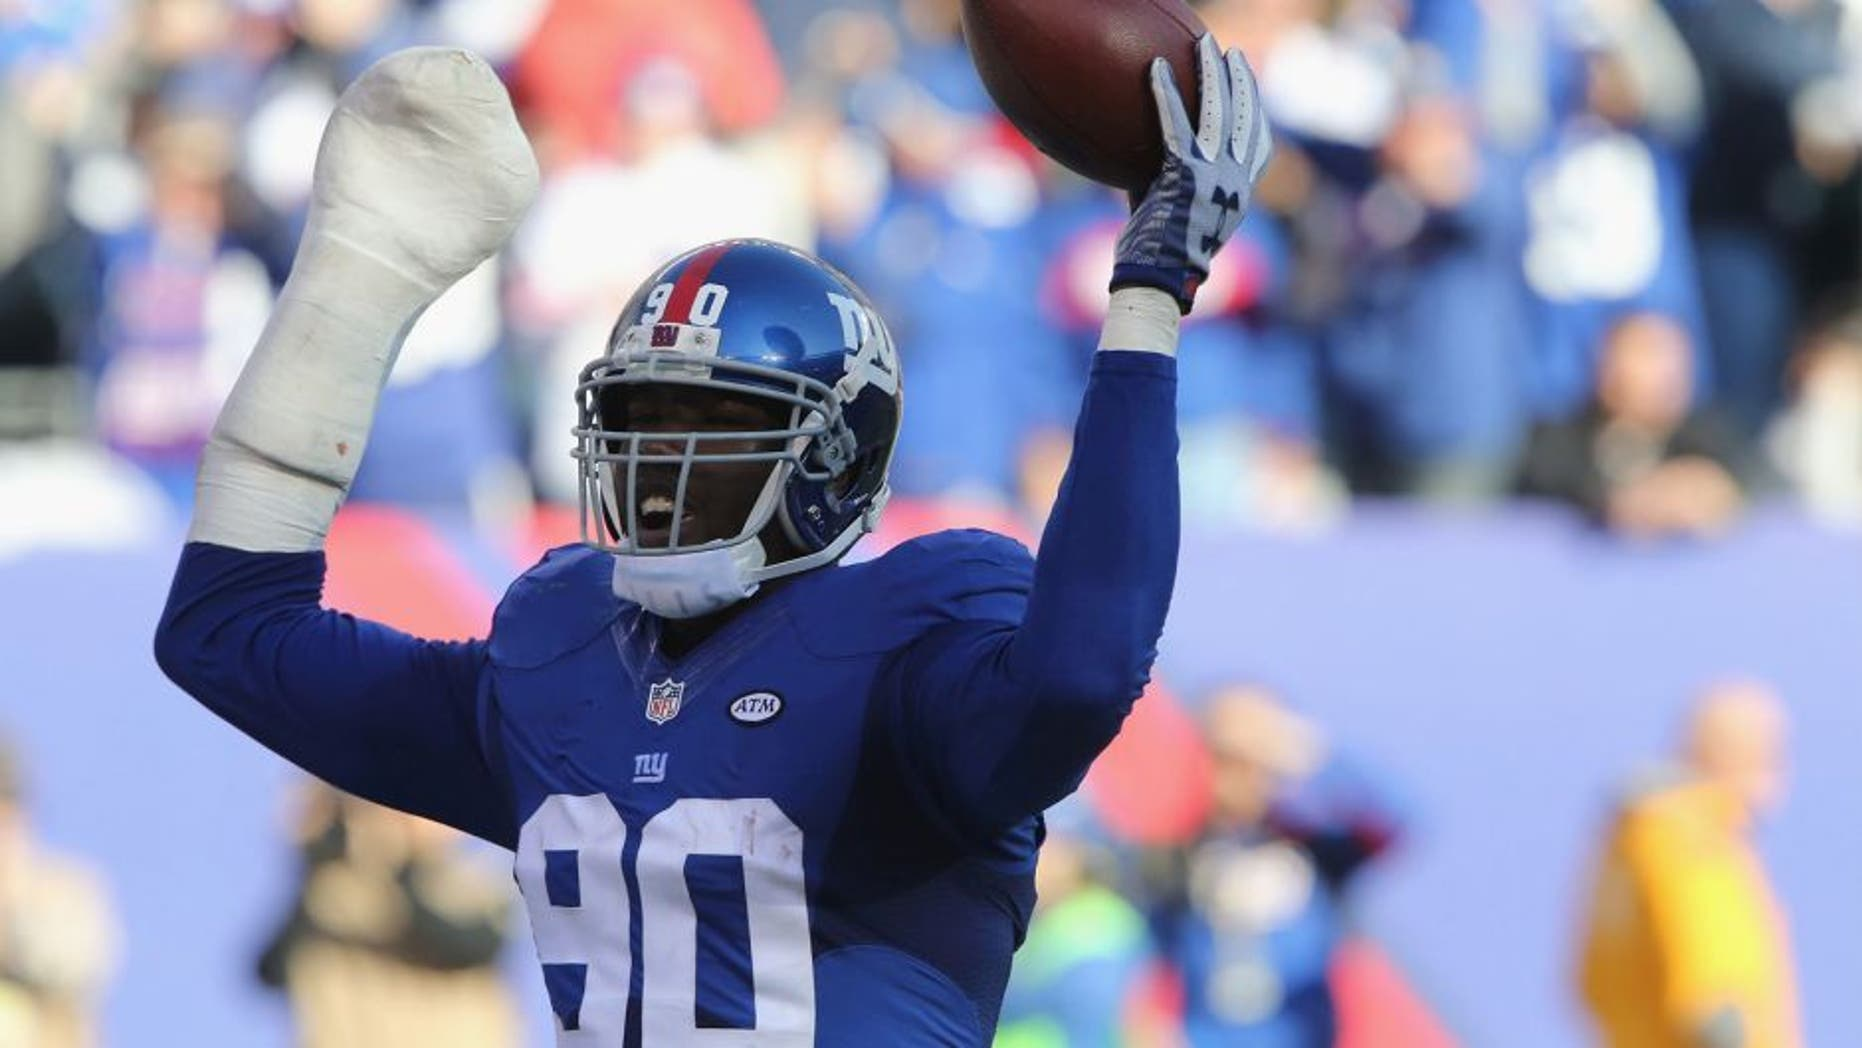 Defensive End Jason Pierre-Paul #90 of the New York Giants has a fumble recovery against the New York Jets at MetLife Stadium on December 6, 2015 in East Rutherford, New Jersey. (Photo by Al Pereira/Getty Images for New York Jets)